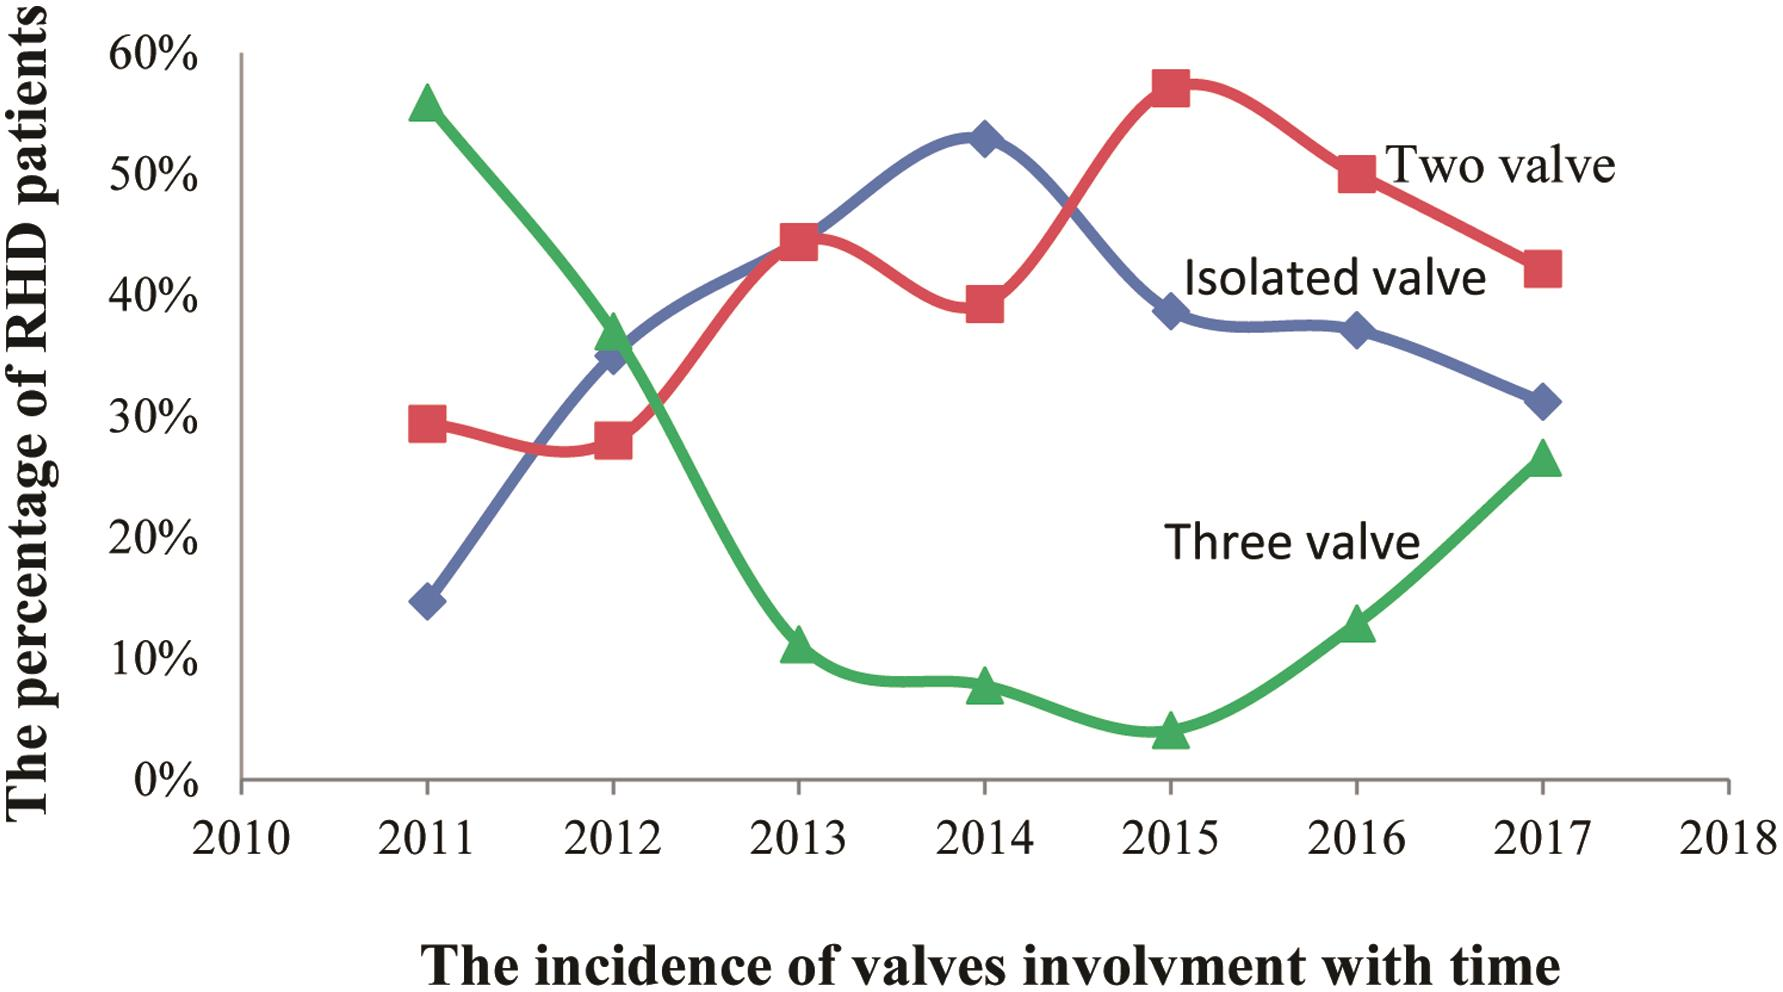 Prevalence of valvular abnormality in patients with rheumatic heart disease.